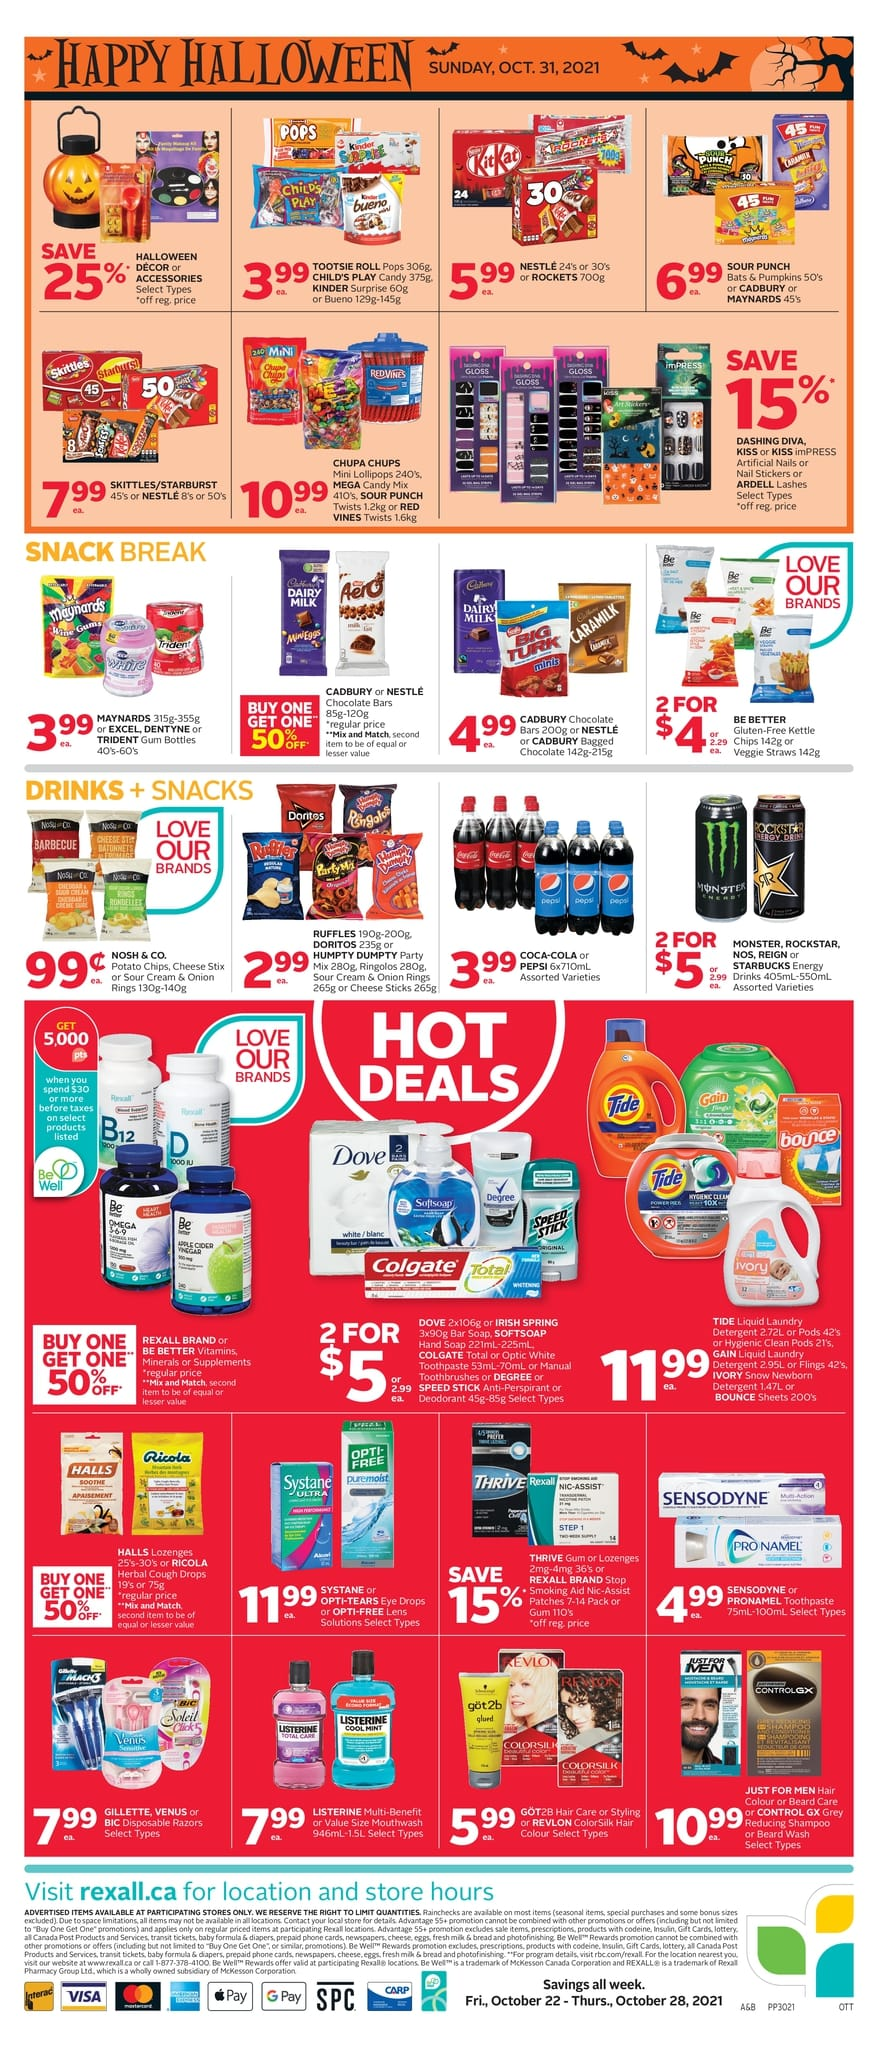 Rexall - Weekly Flyer Specials - Page 2